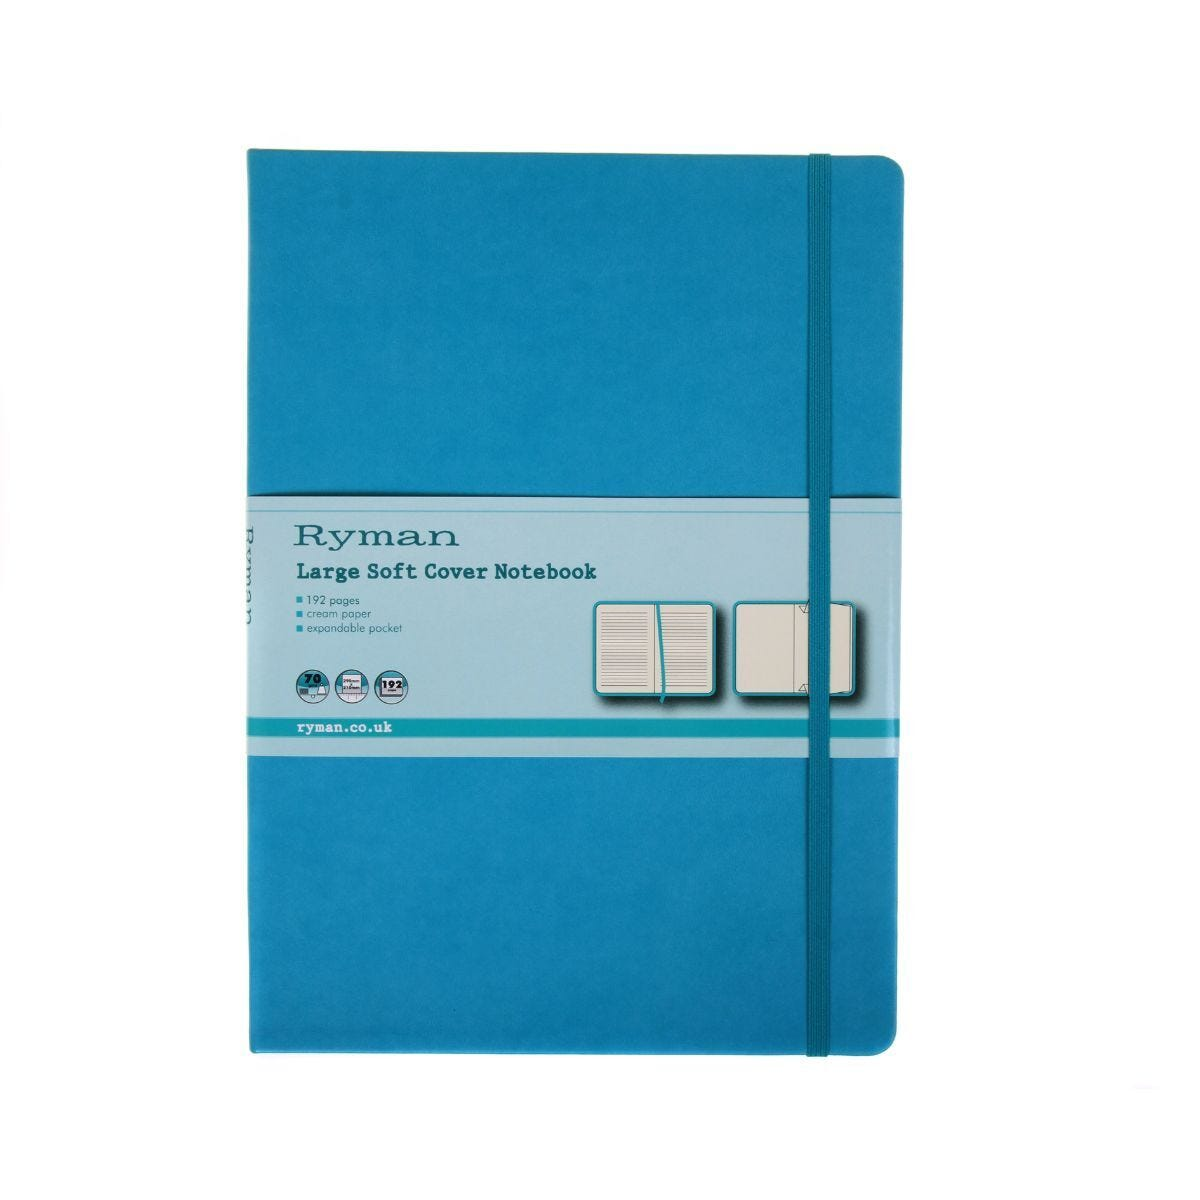 Ryman Soft Cover Notebook Large Ruled 192 Pages 96 Sheets Teal